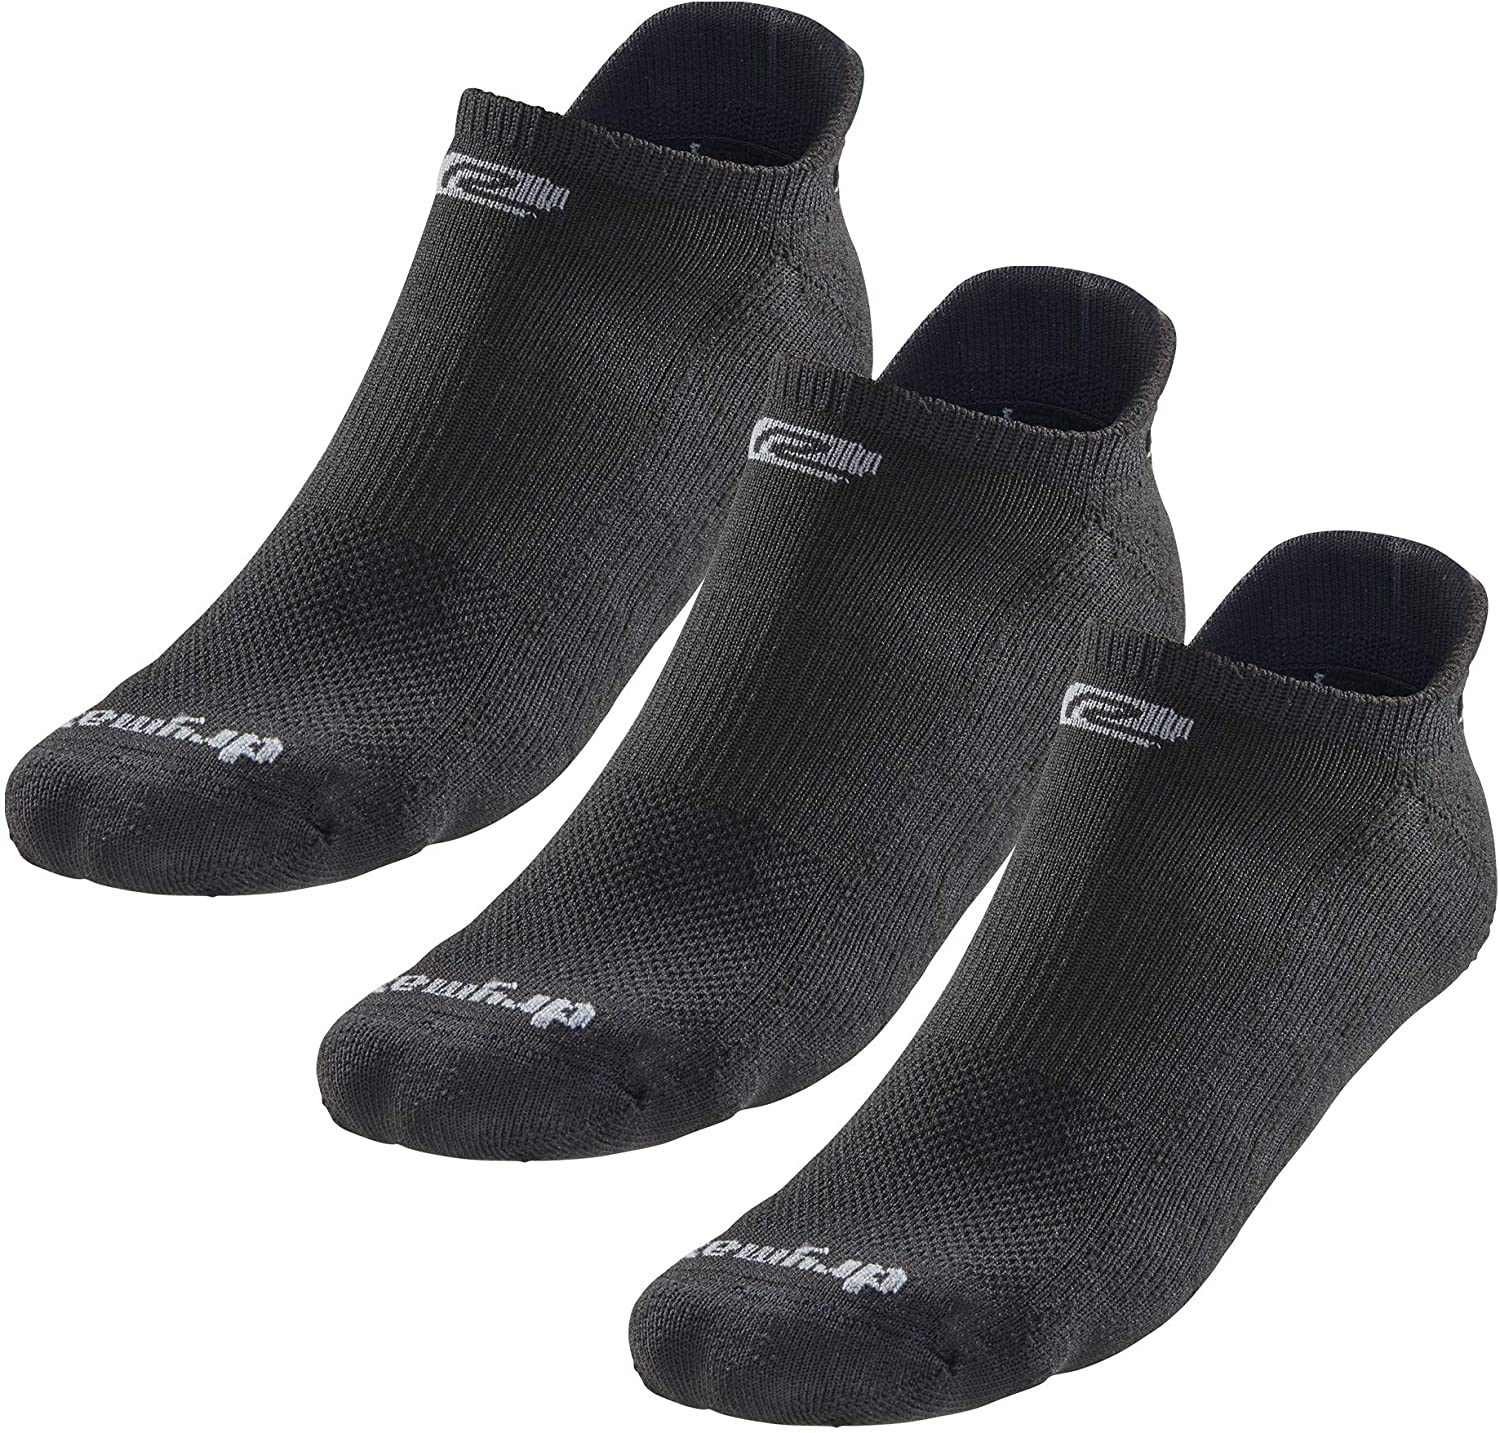 Gear Recommendation Drymax Socks